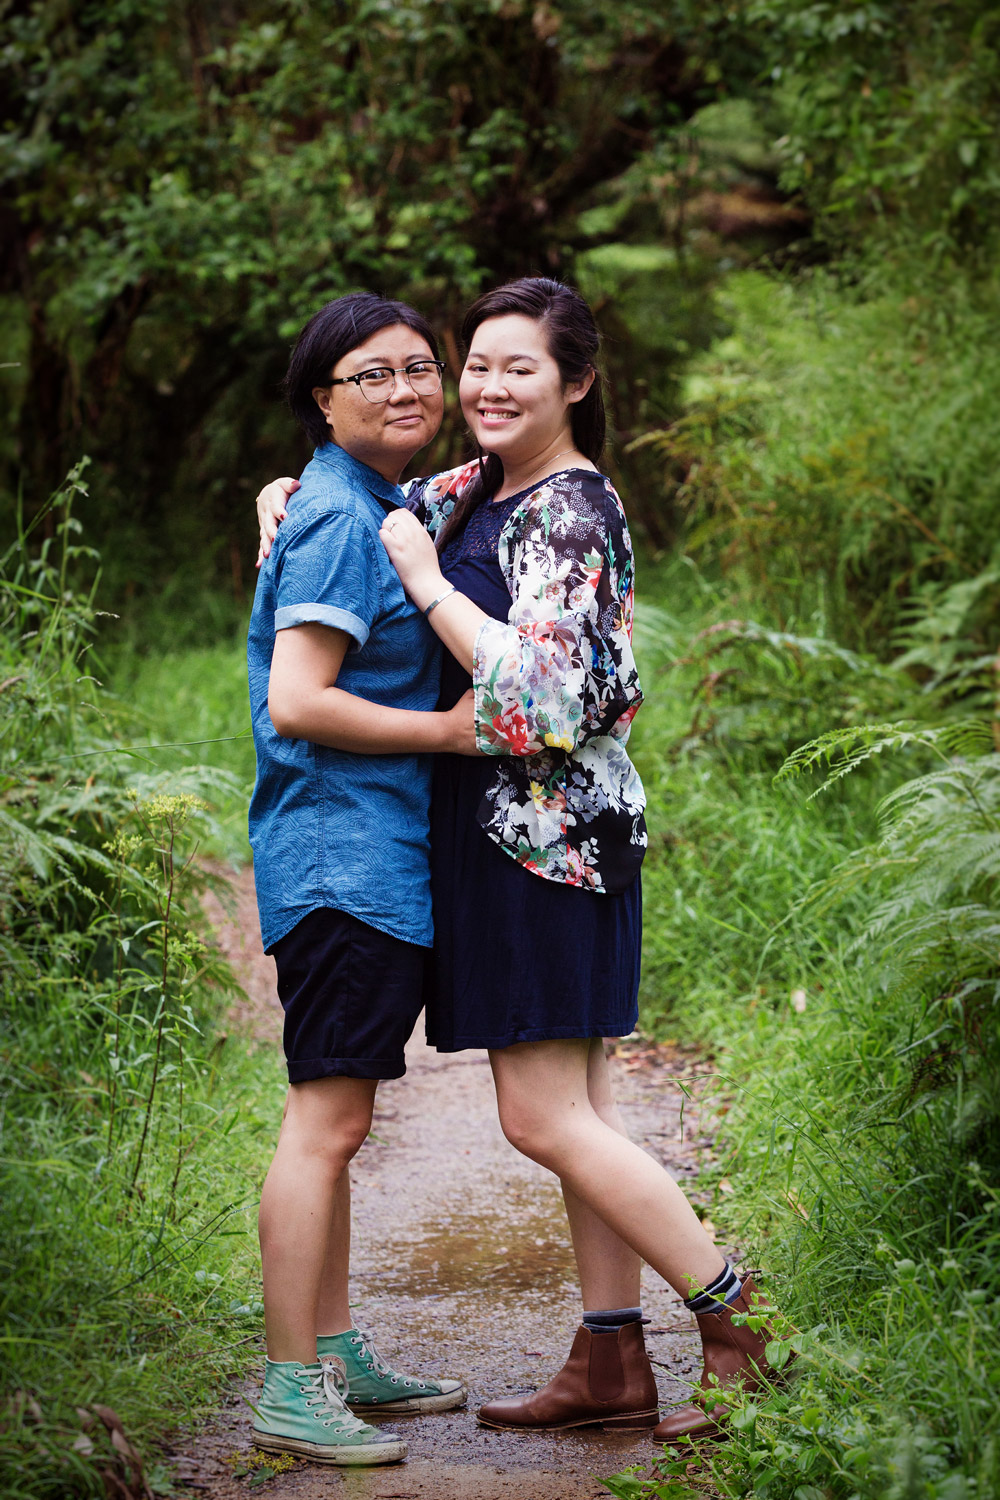 013 same sex engagment photography melbourne.jpg